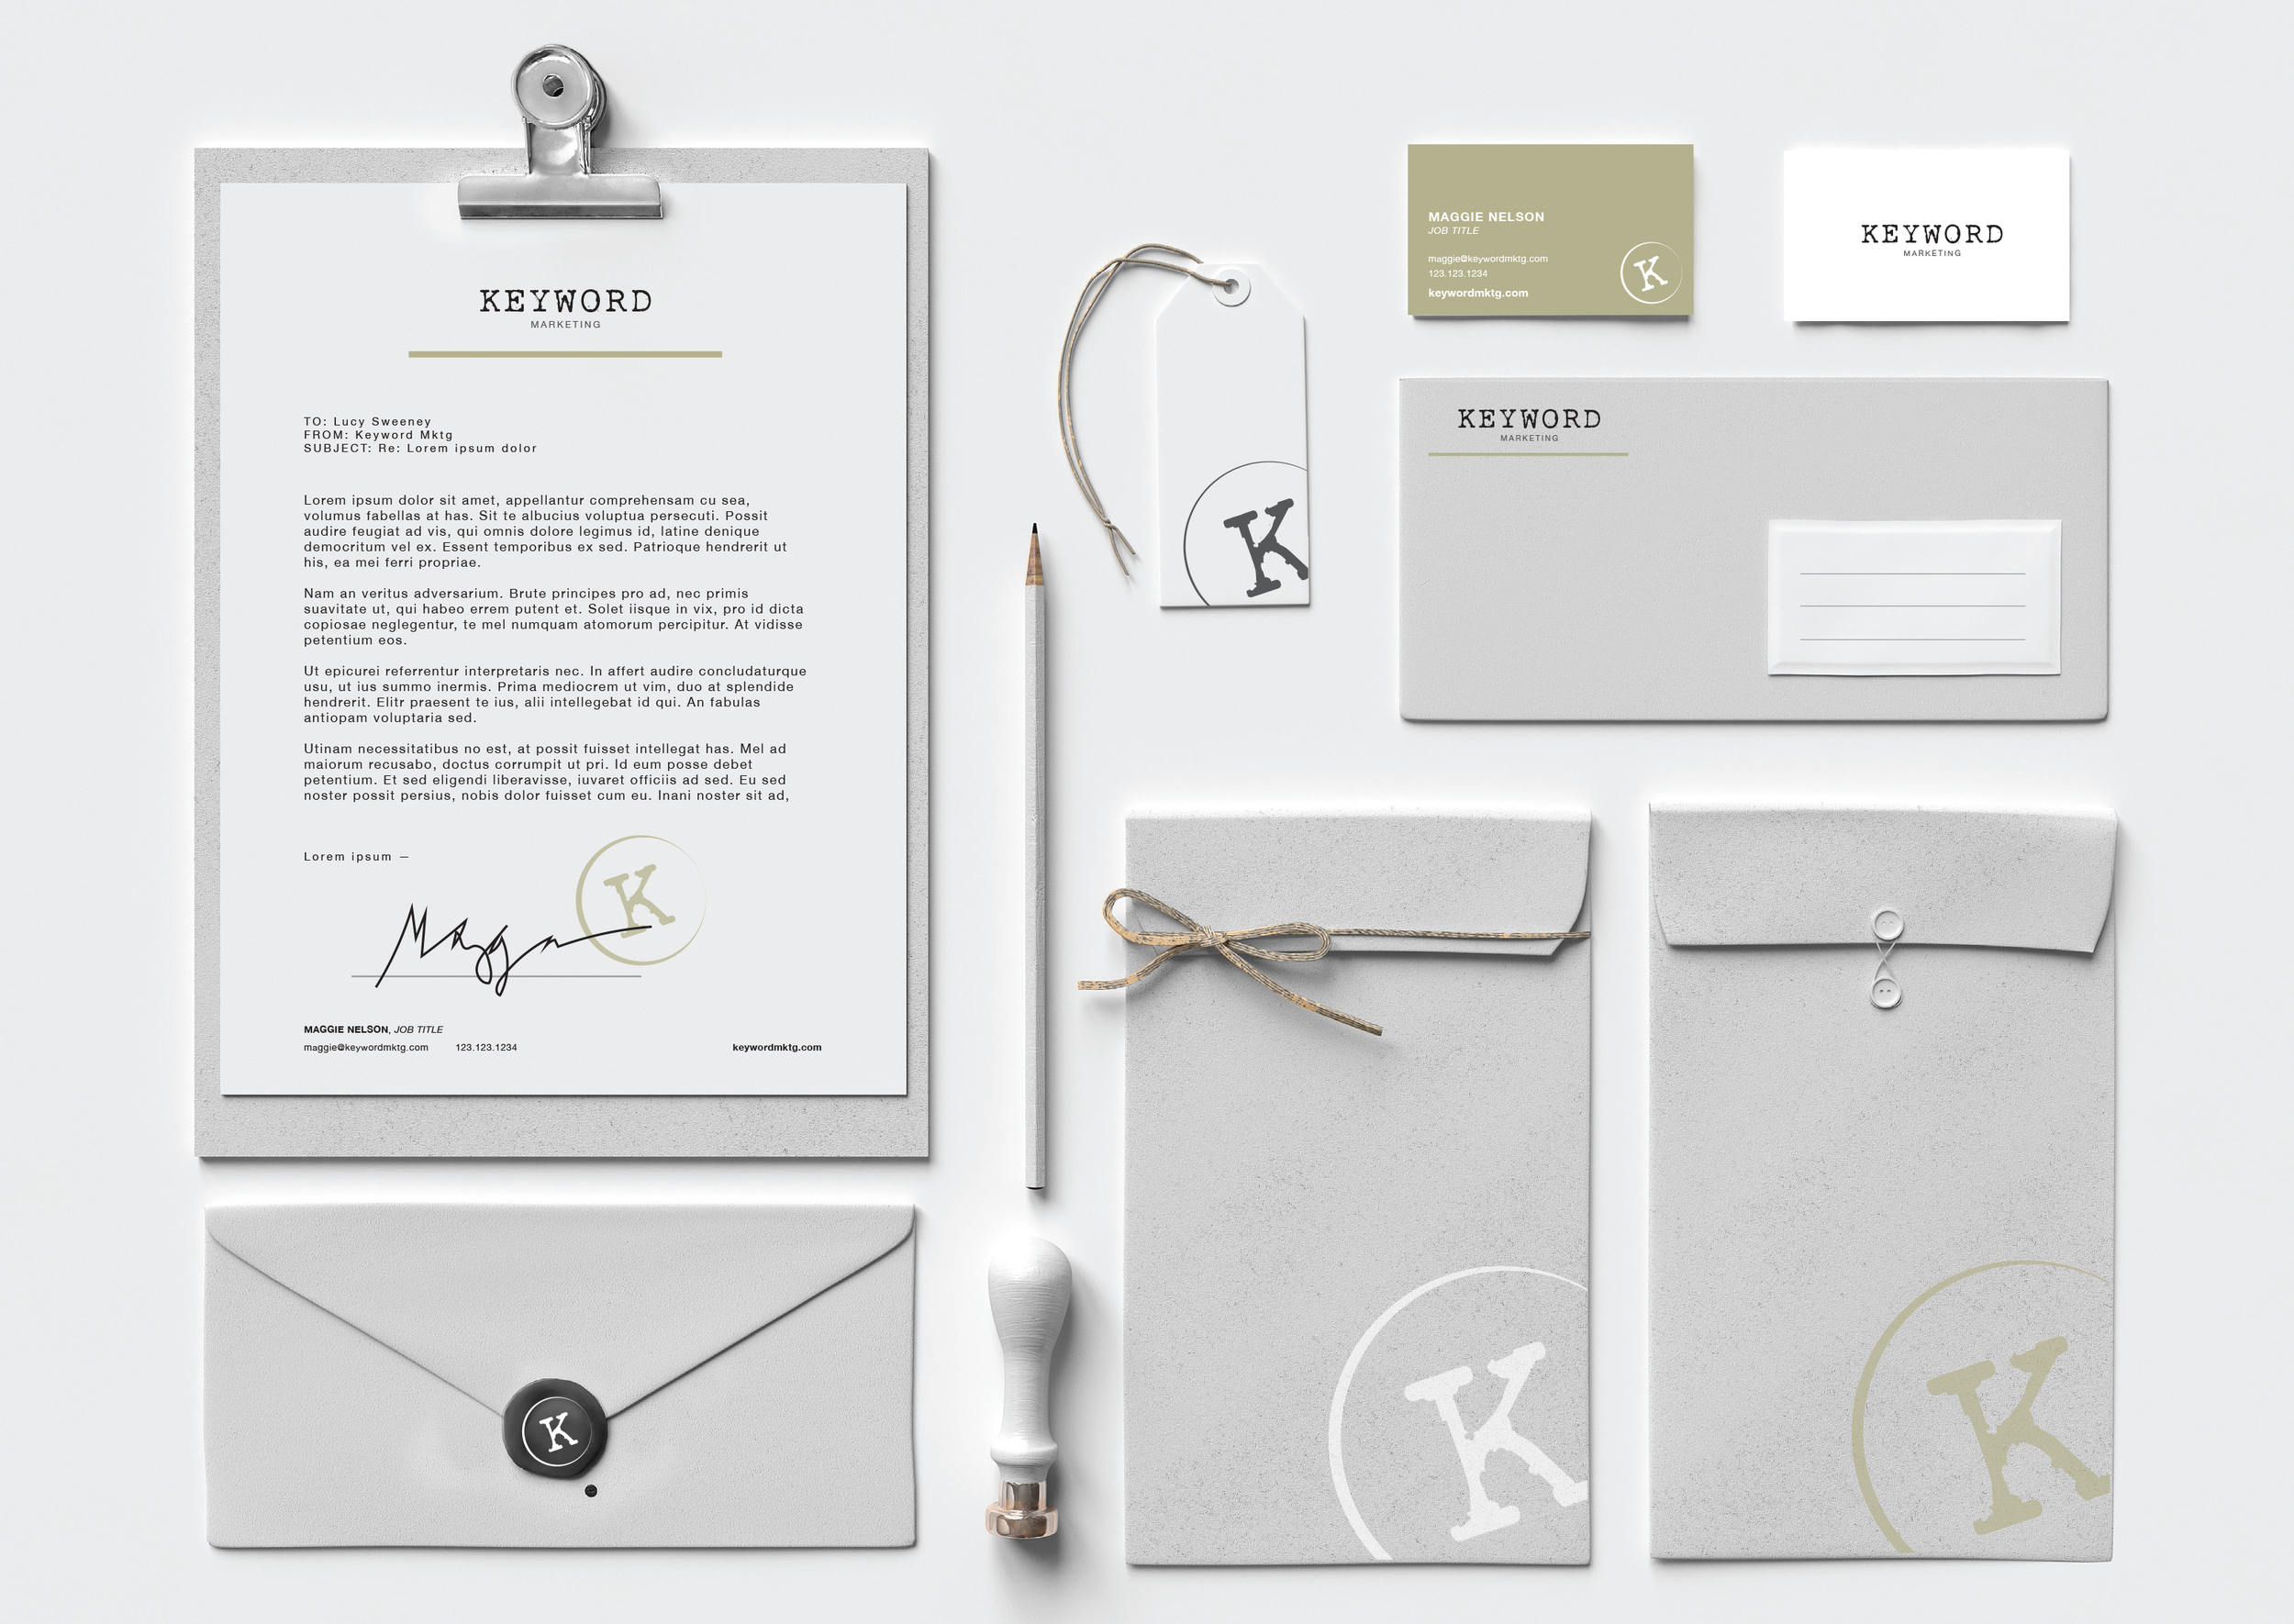 KEYWORD MARKETING, BRAND IDENTITY CONCEPT - 2015